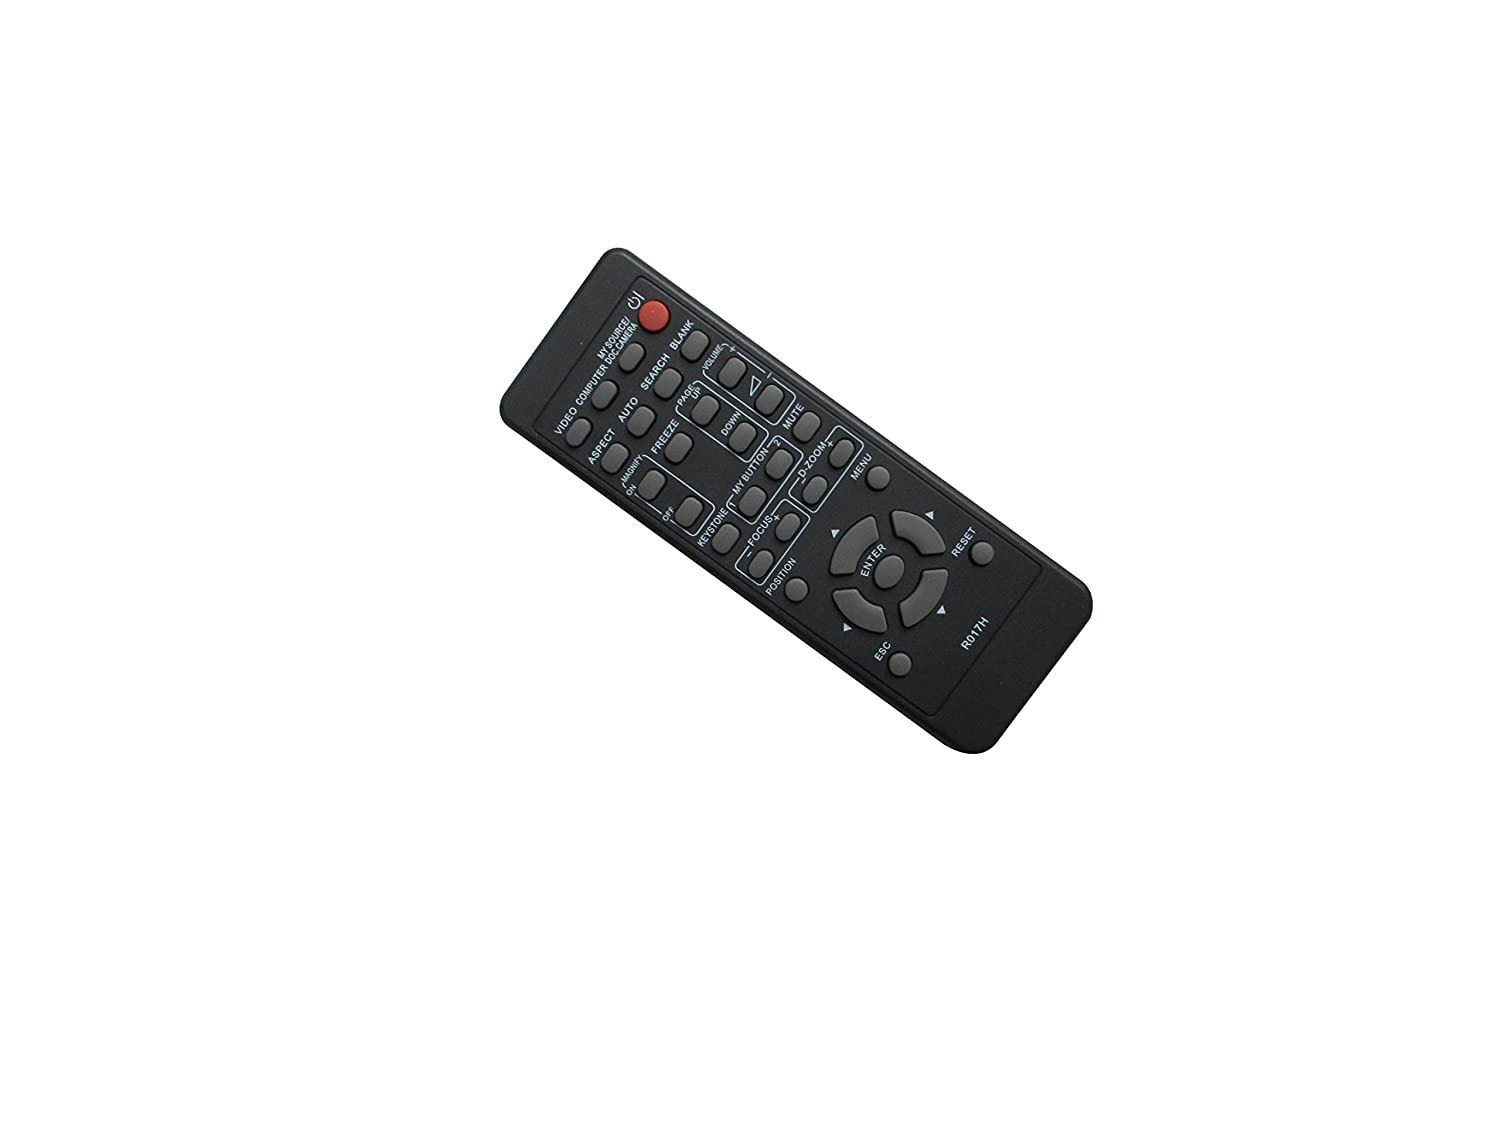 Compatible 3LCD Projector Replacement Remote Control For Hitachi CP-X2515WN CP-X2520 CP-X2530WN CP-X254 HCDZ HCDZ-X03918